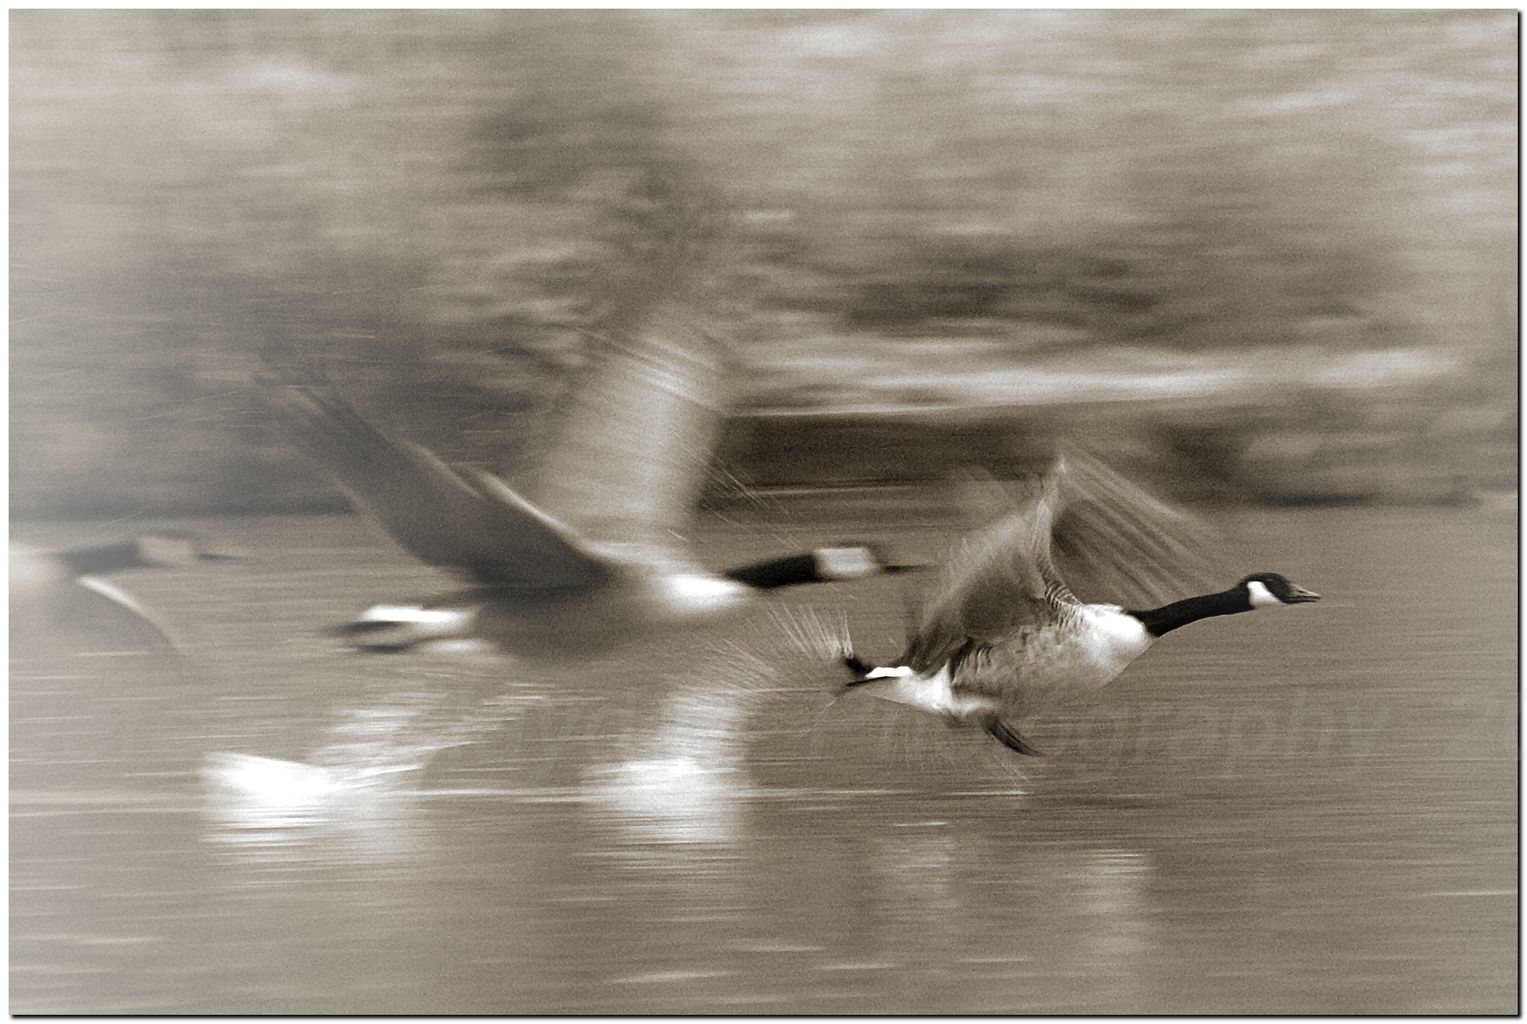 Canada Geese taking off in a blur of feathers.